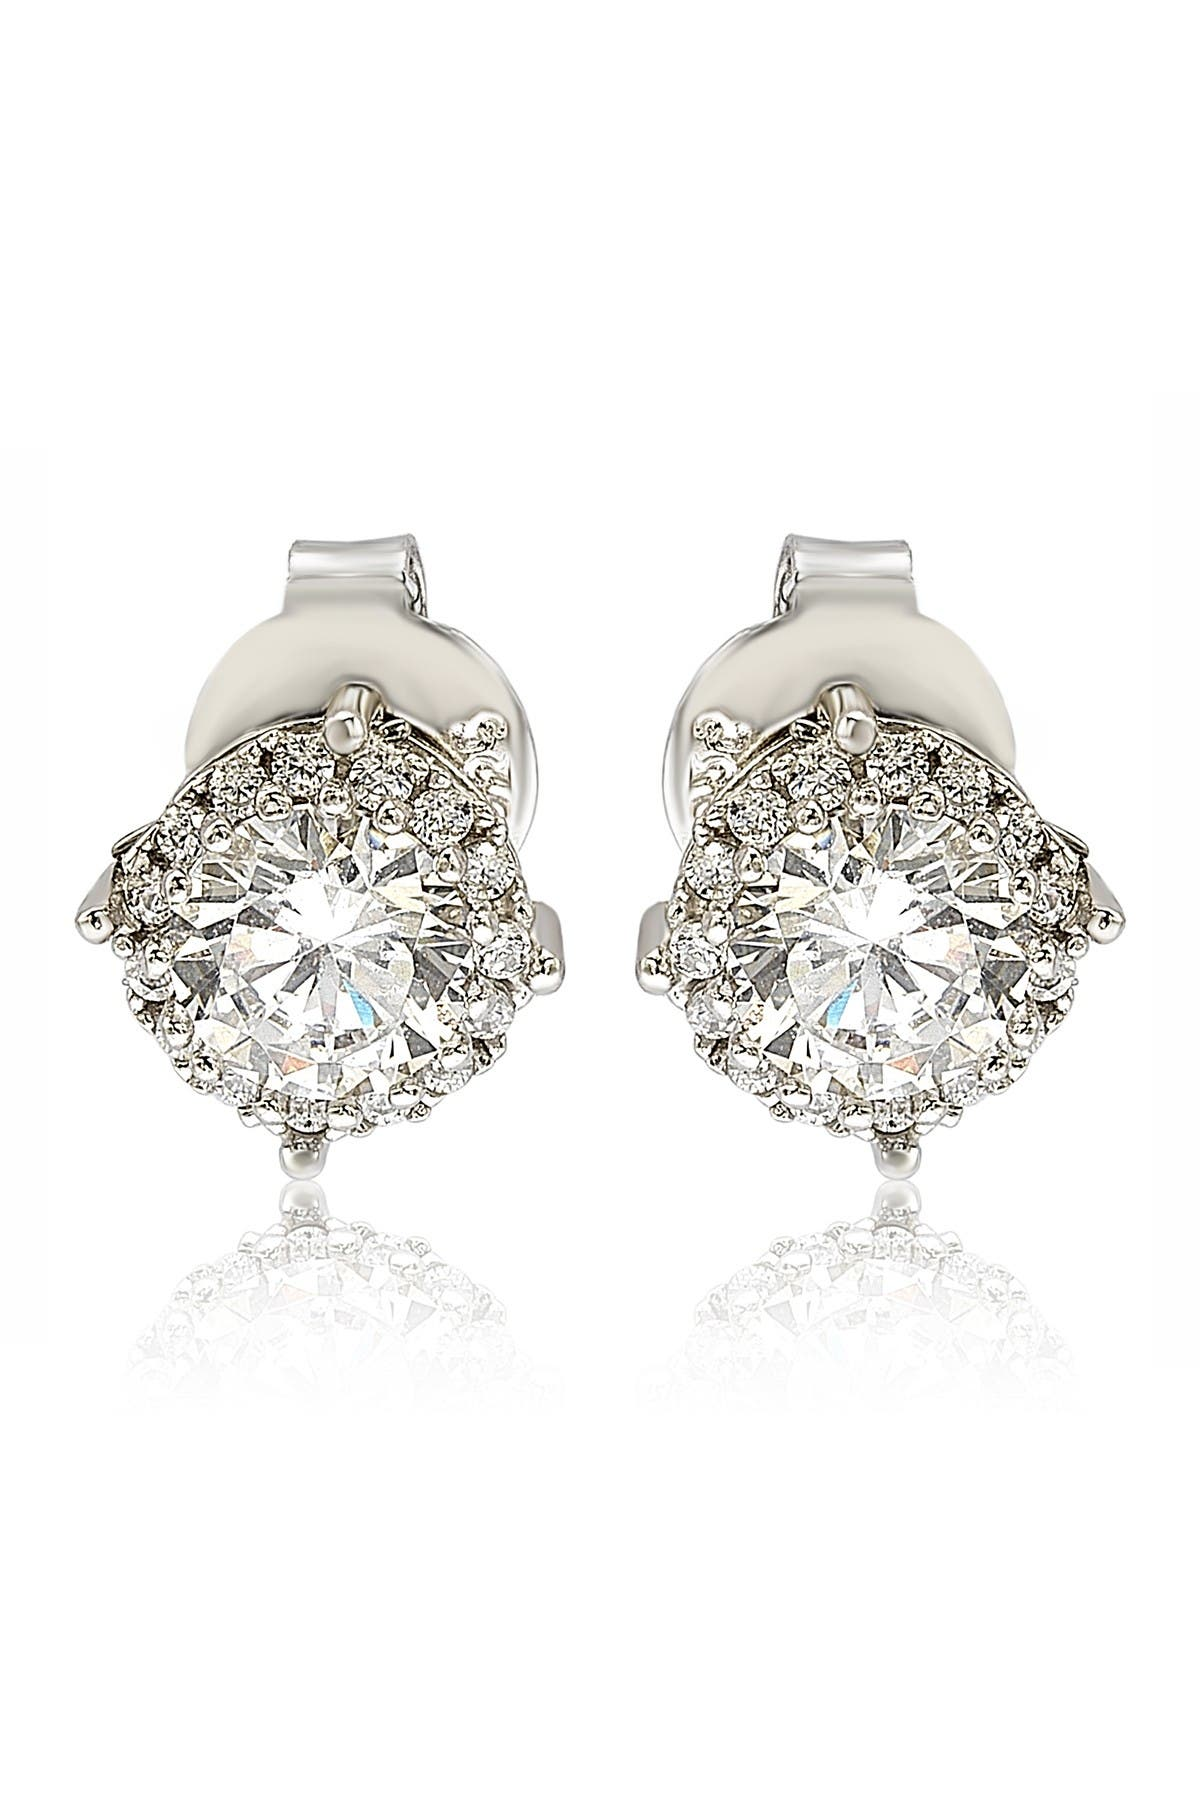 Image of Suzy Levian Sterling Silver White CZ Round Stud Earrings